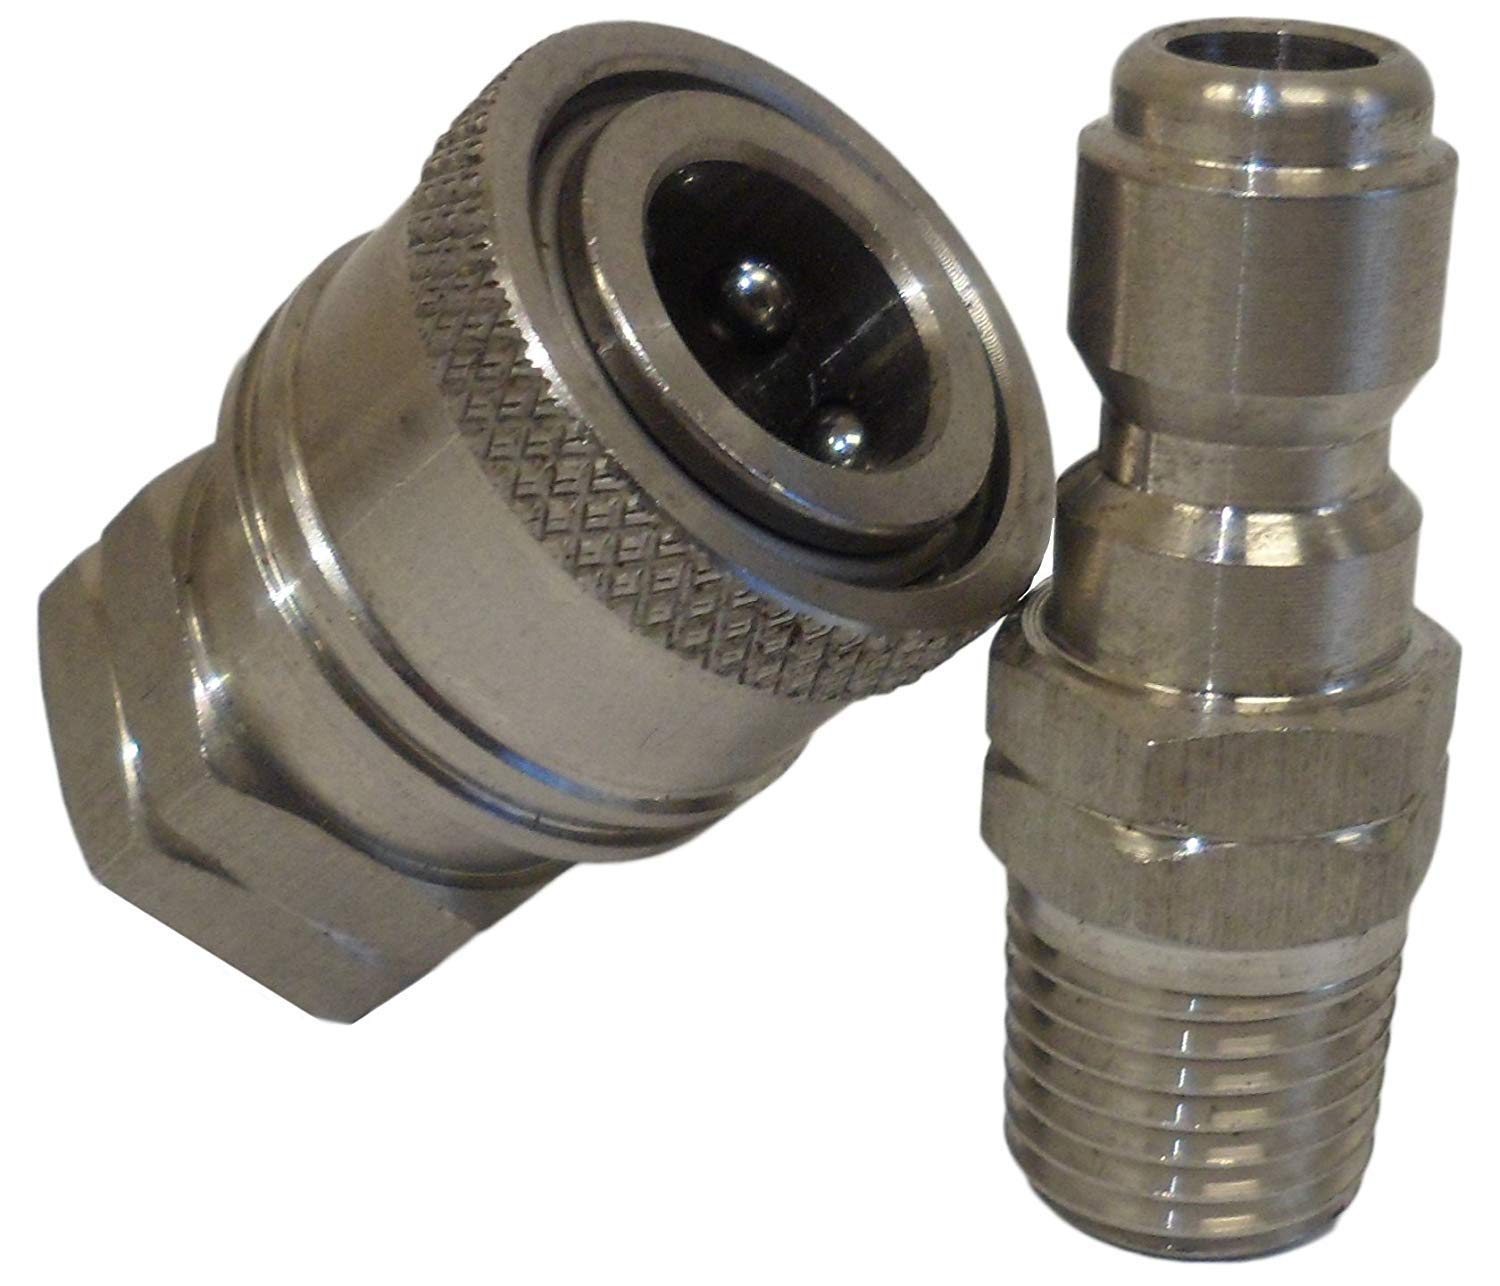 Ultimate Washer UW11-PWBC83 1/4-Inch High Pressure Quick Disconnect Adapter Set, Replaces Apache 98441022, 5000 PSI Rating